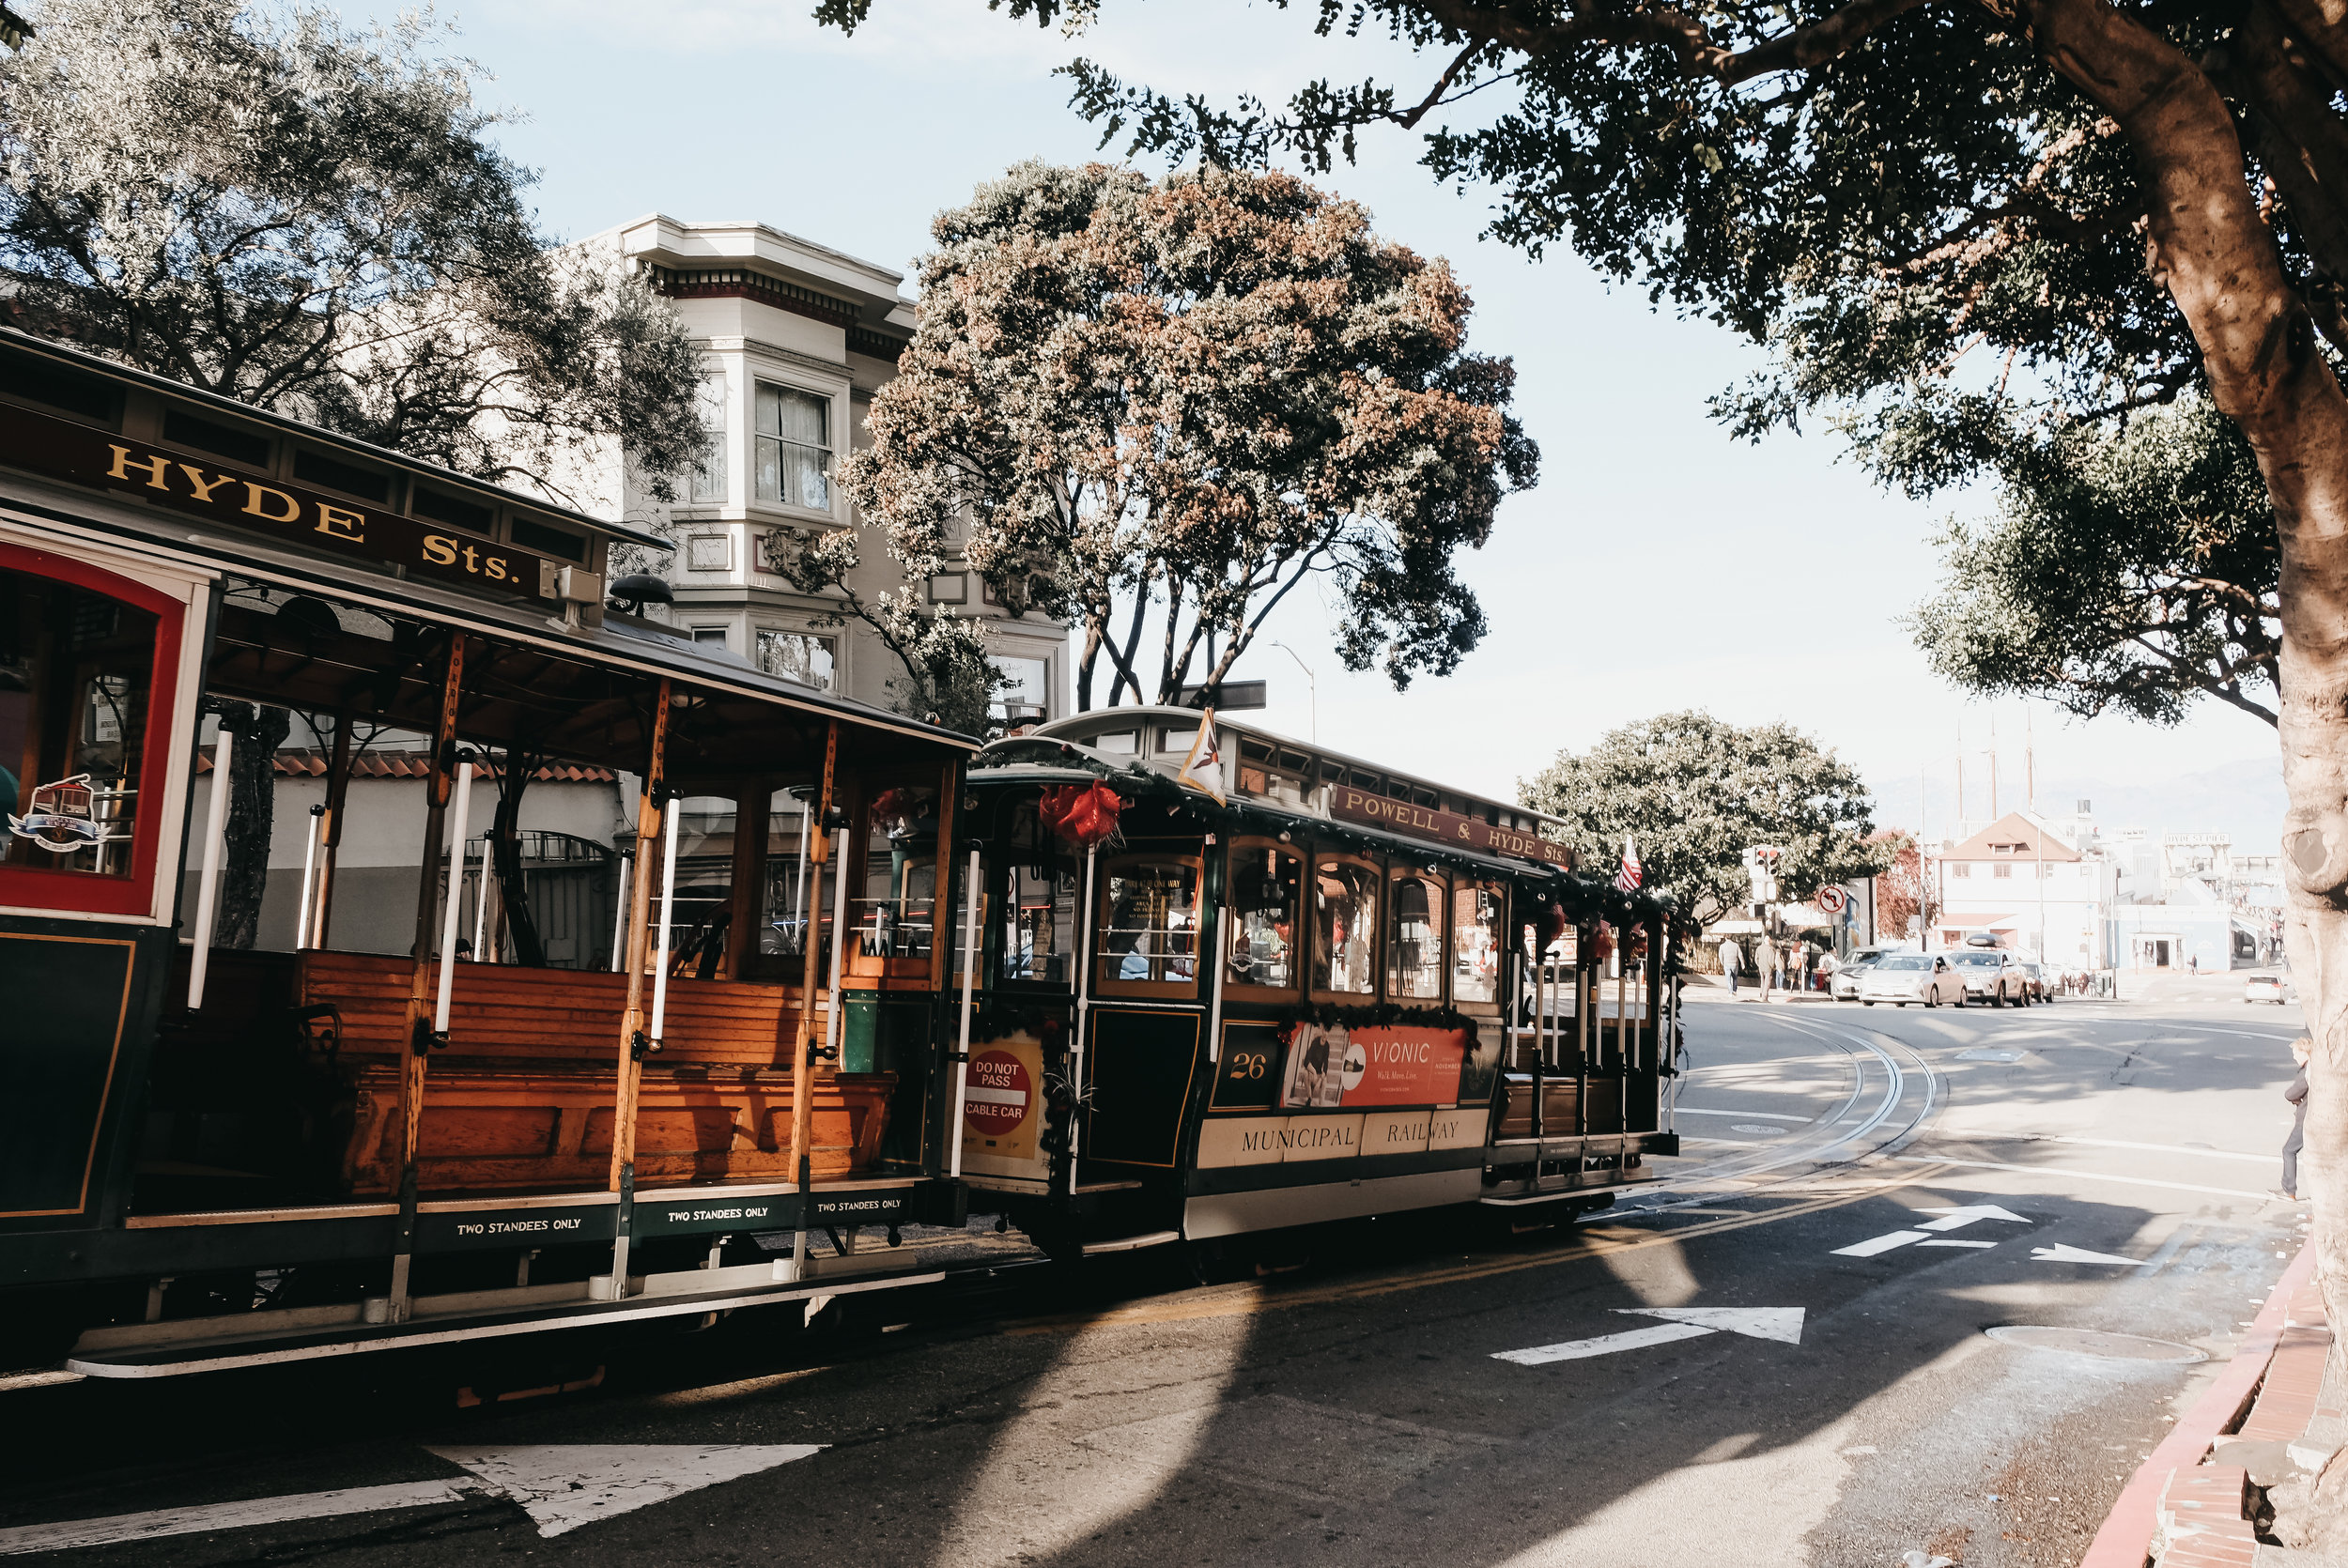 Explore San Francisco - Gather what you need for the day and get ready to go have fun! The rest of your luggage will be waiting for you in your hotel room.